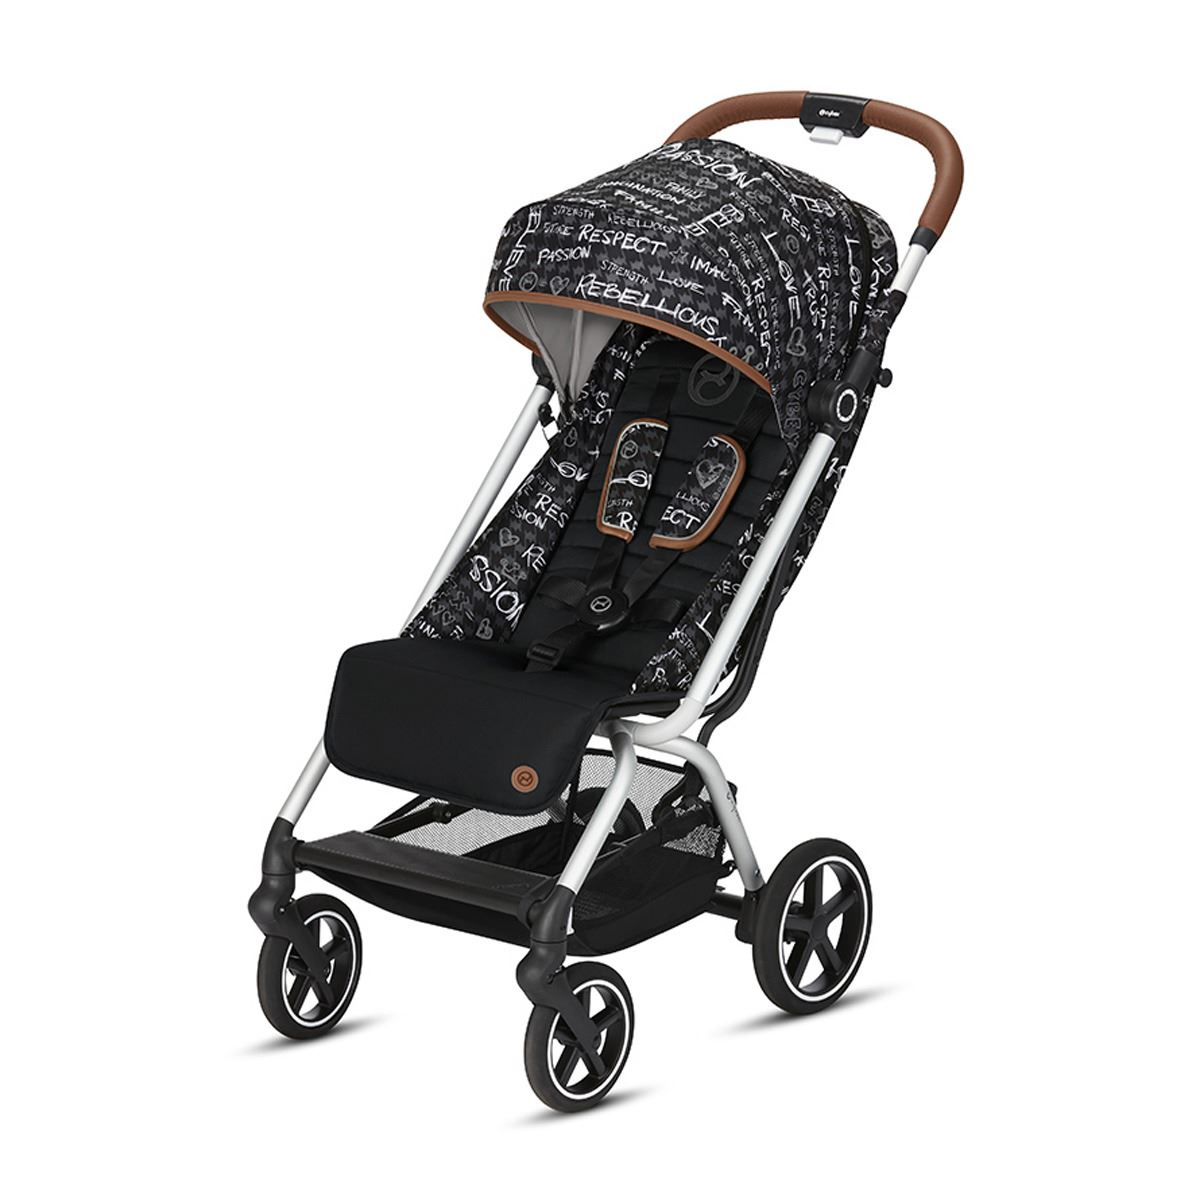 silla de paseo Eezy S plus Values for life